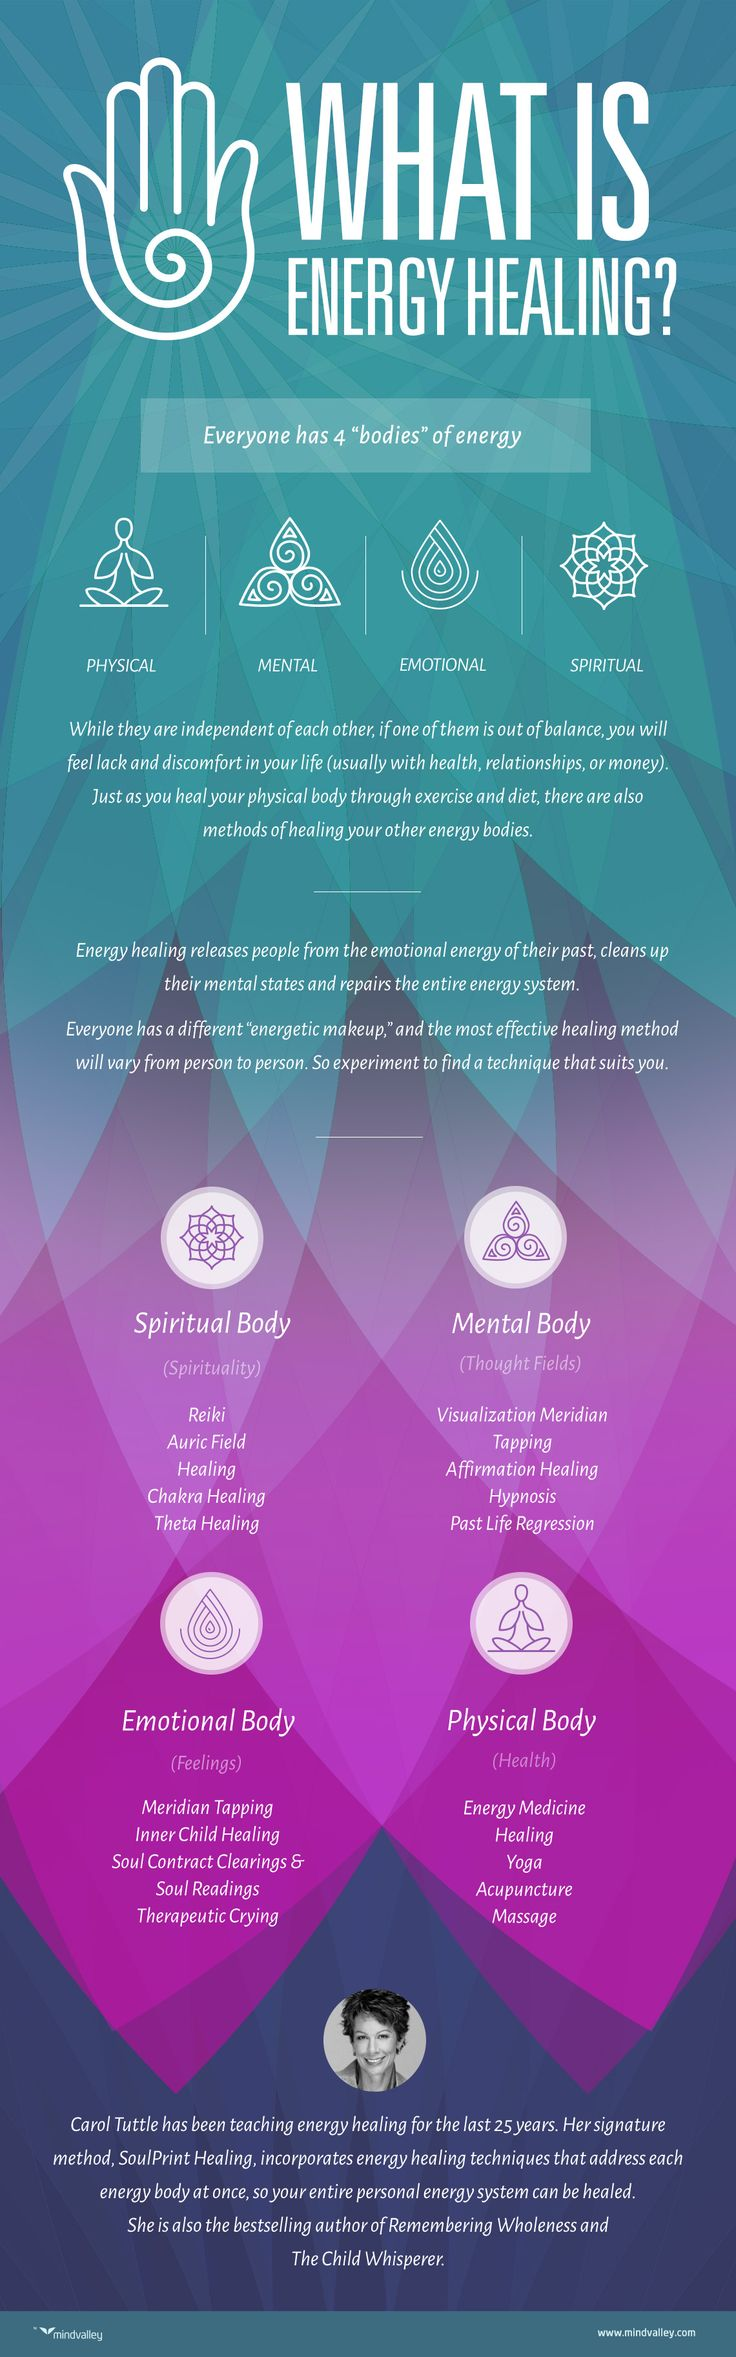 What is Energy Healing? Energy Healing is a method or different techniques by which you can heal your mental, emotional and physical energy patterns that are causing you disease or blocks in...